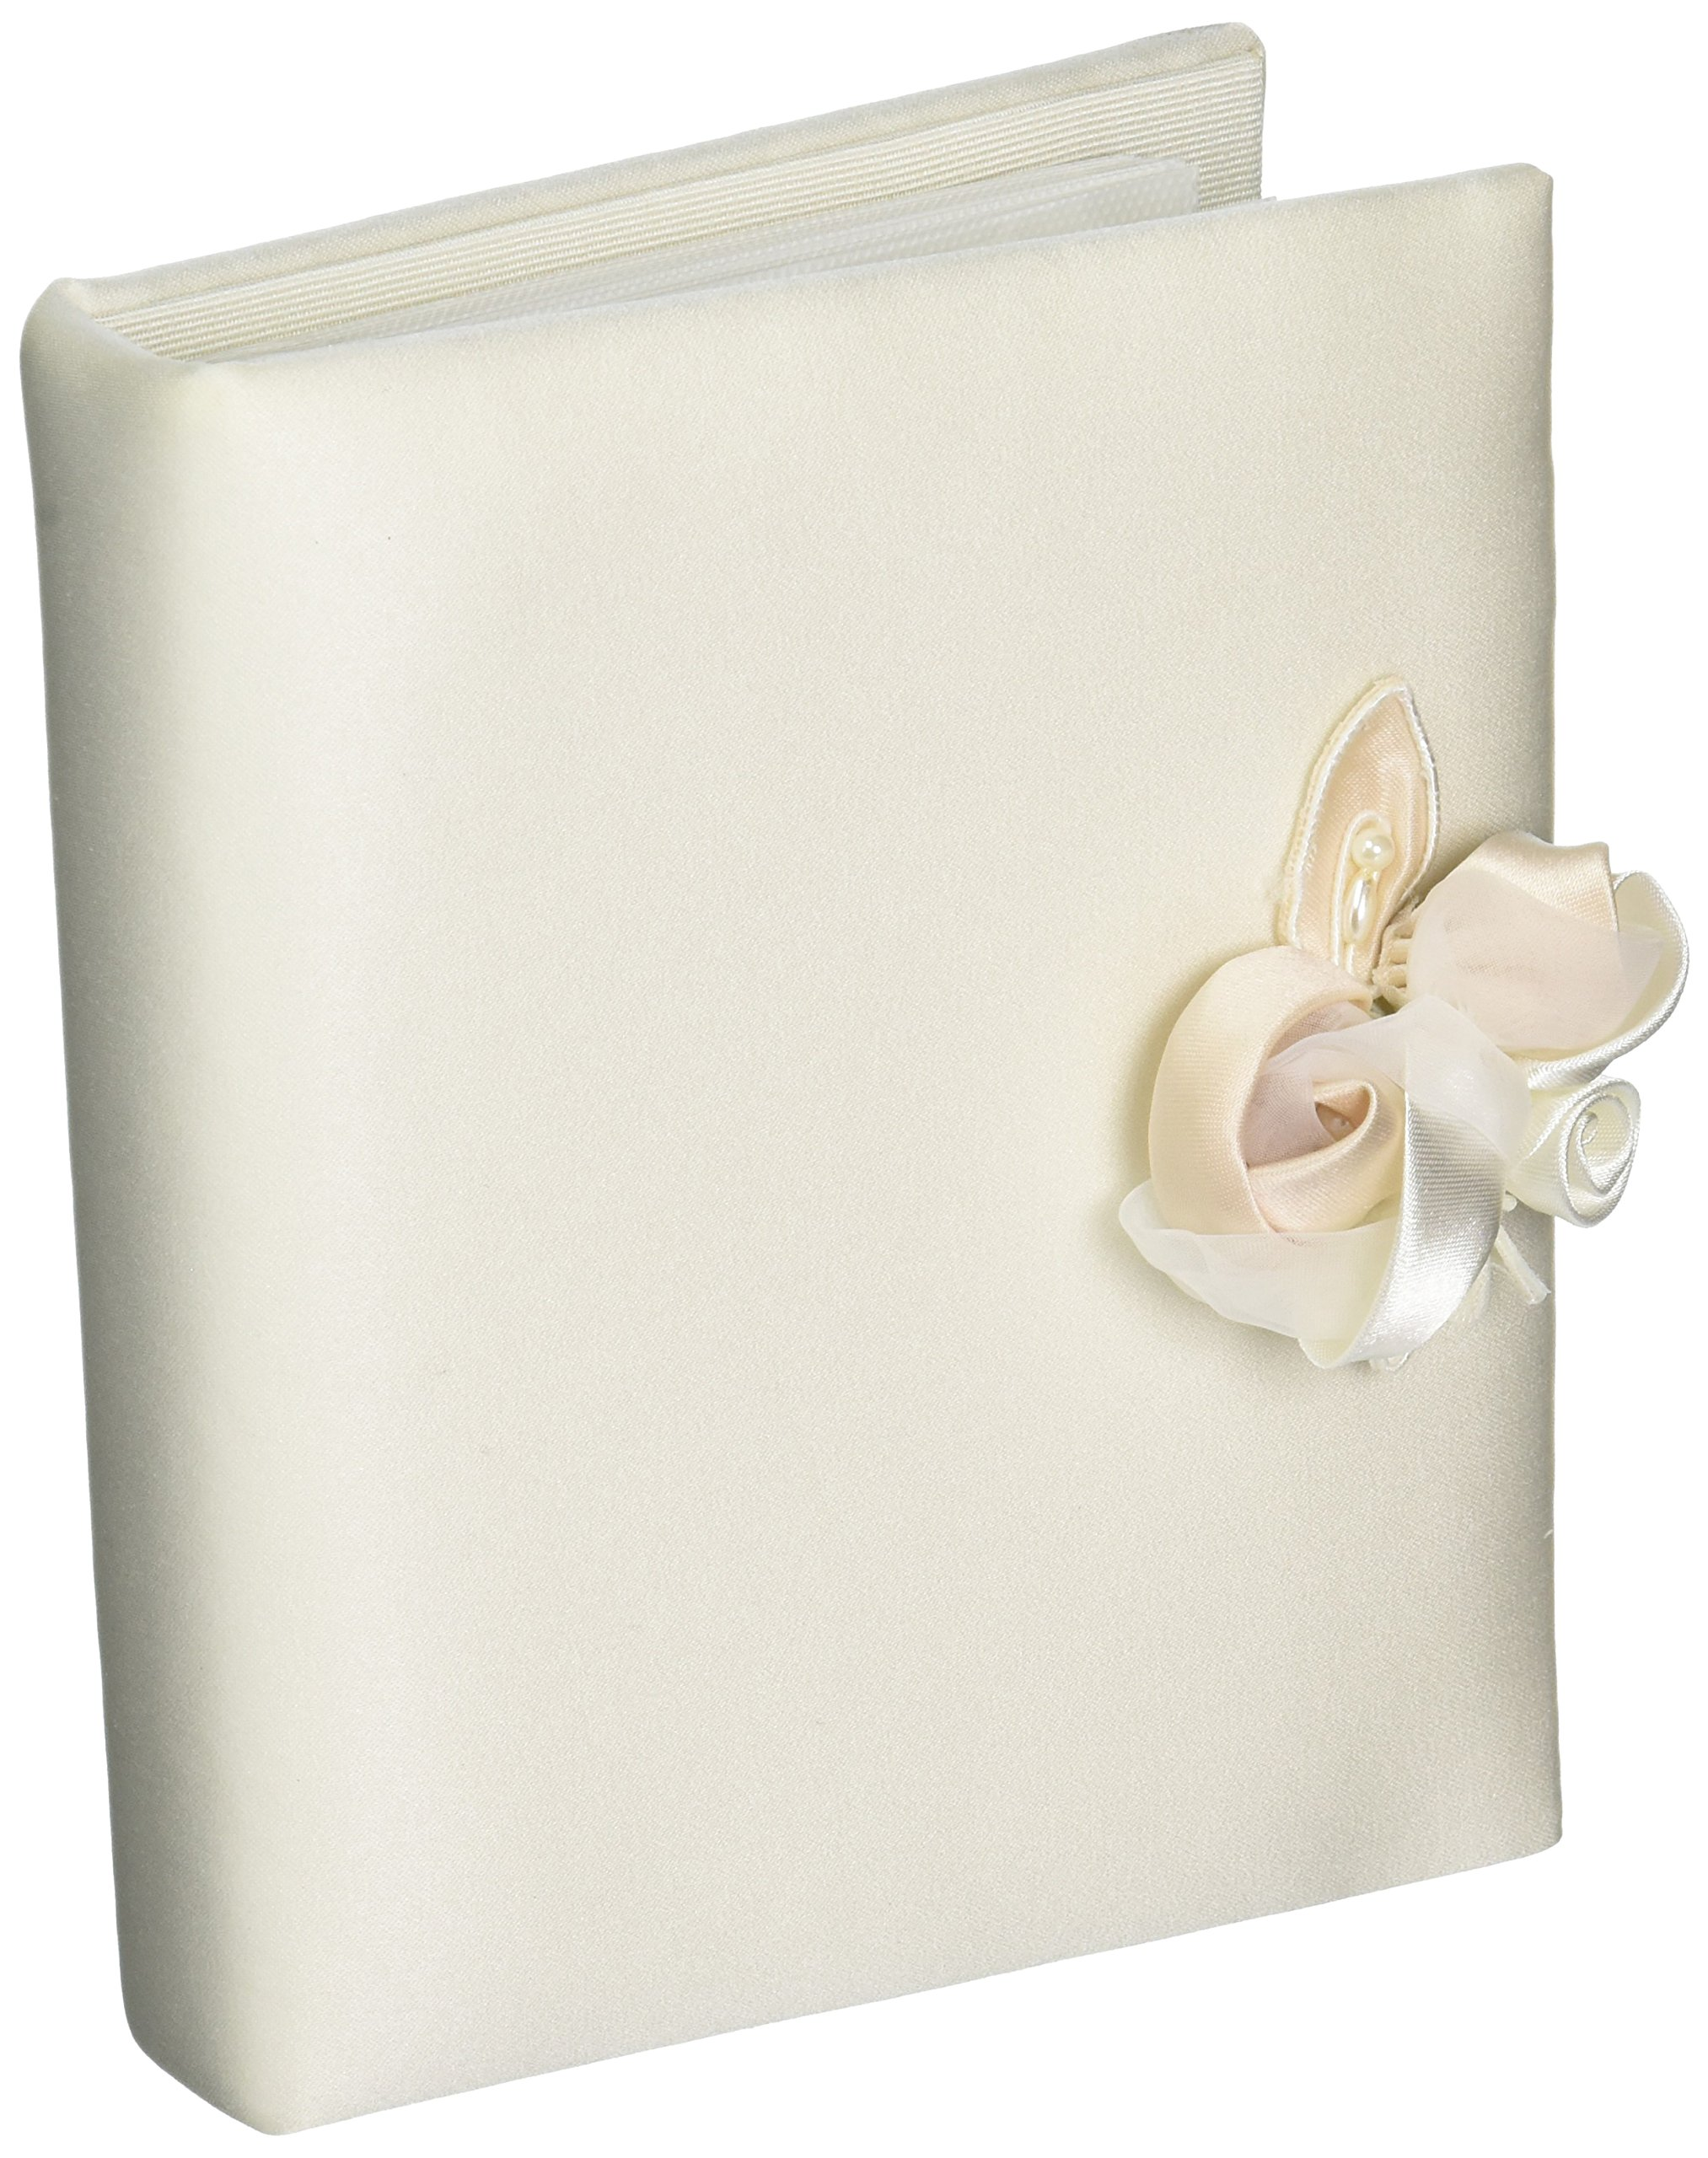 Amour Wedding Album, 4-Inch by 6-Inch, Ivory